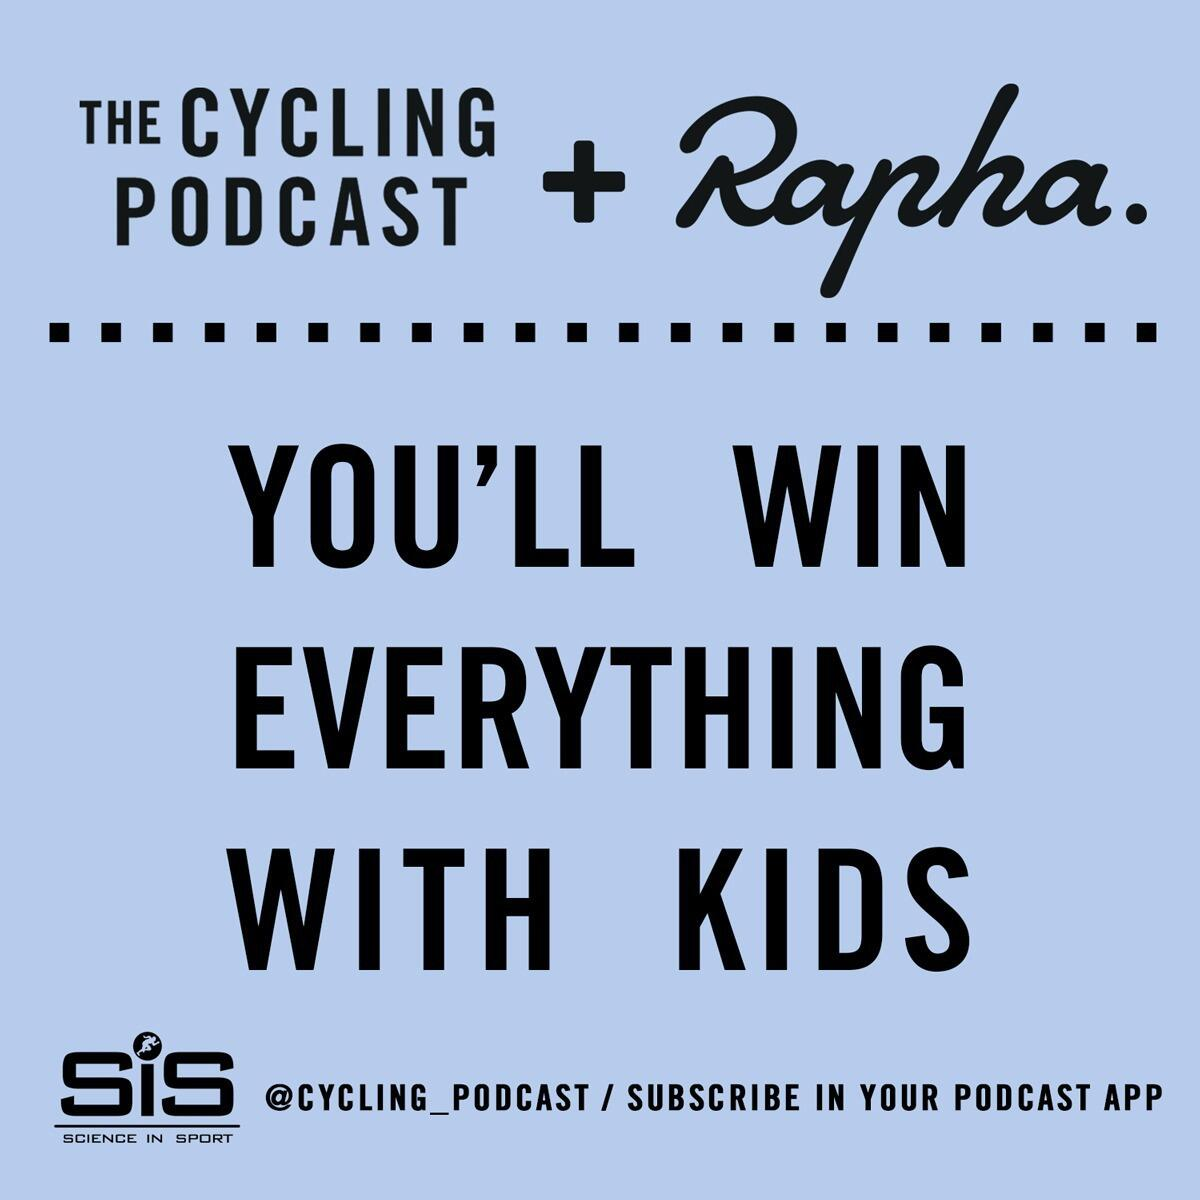 123: You'll Win Everything With Kids